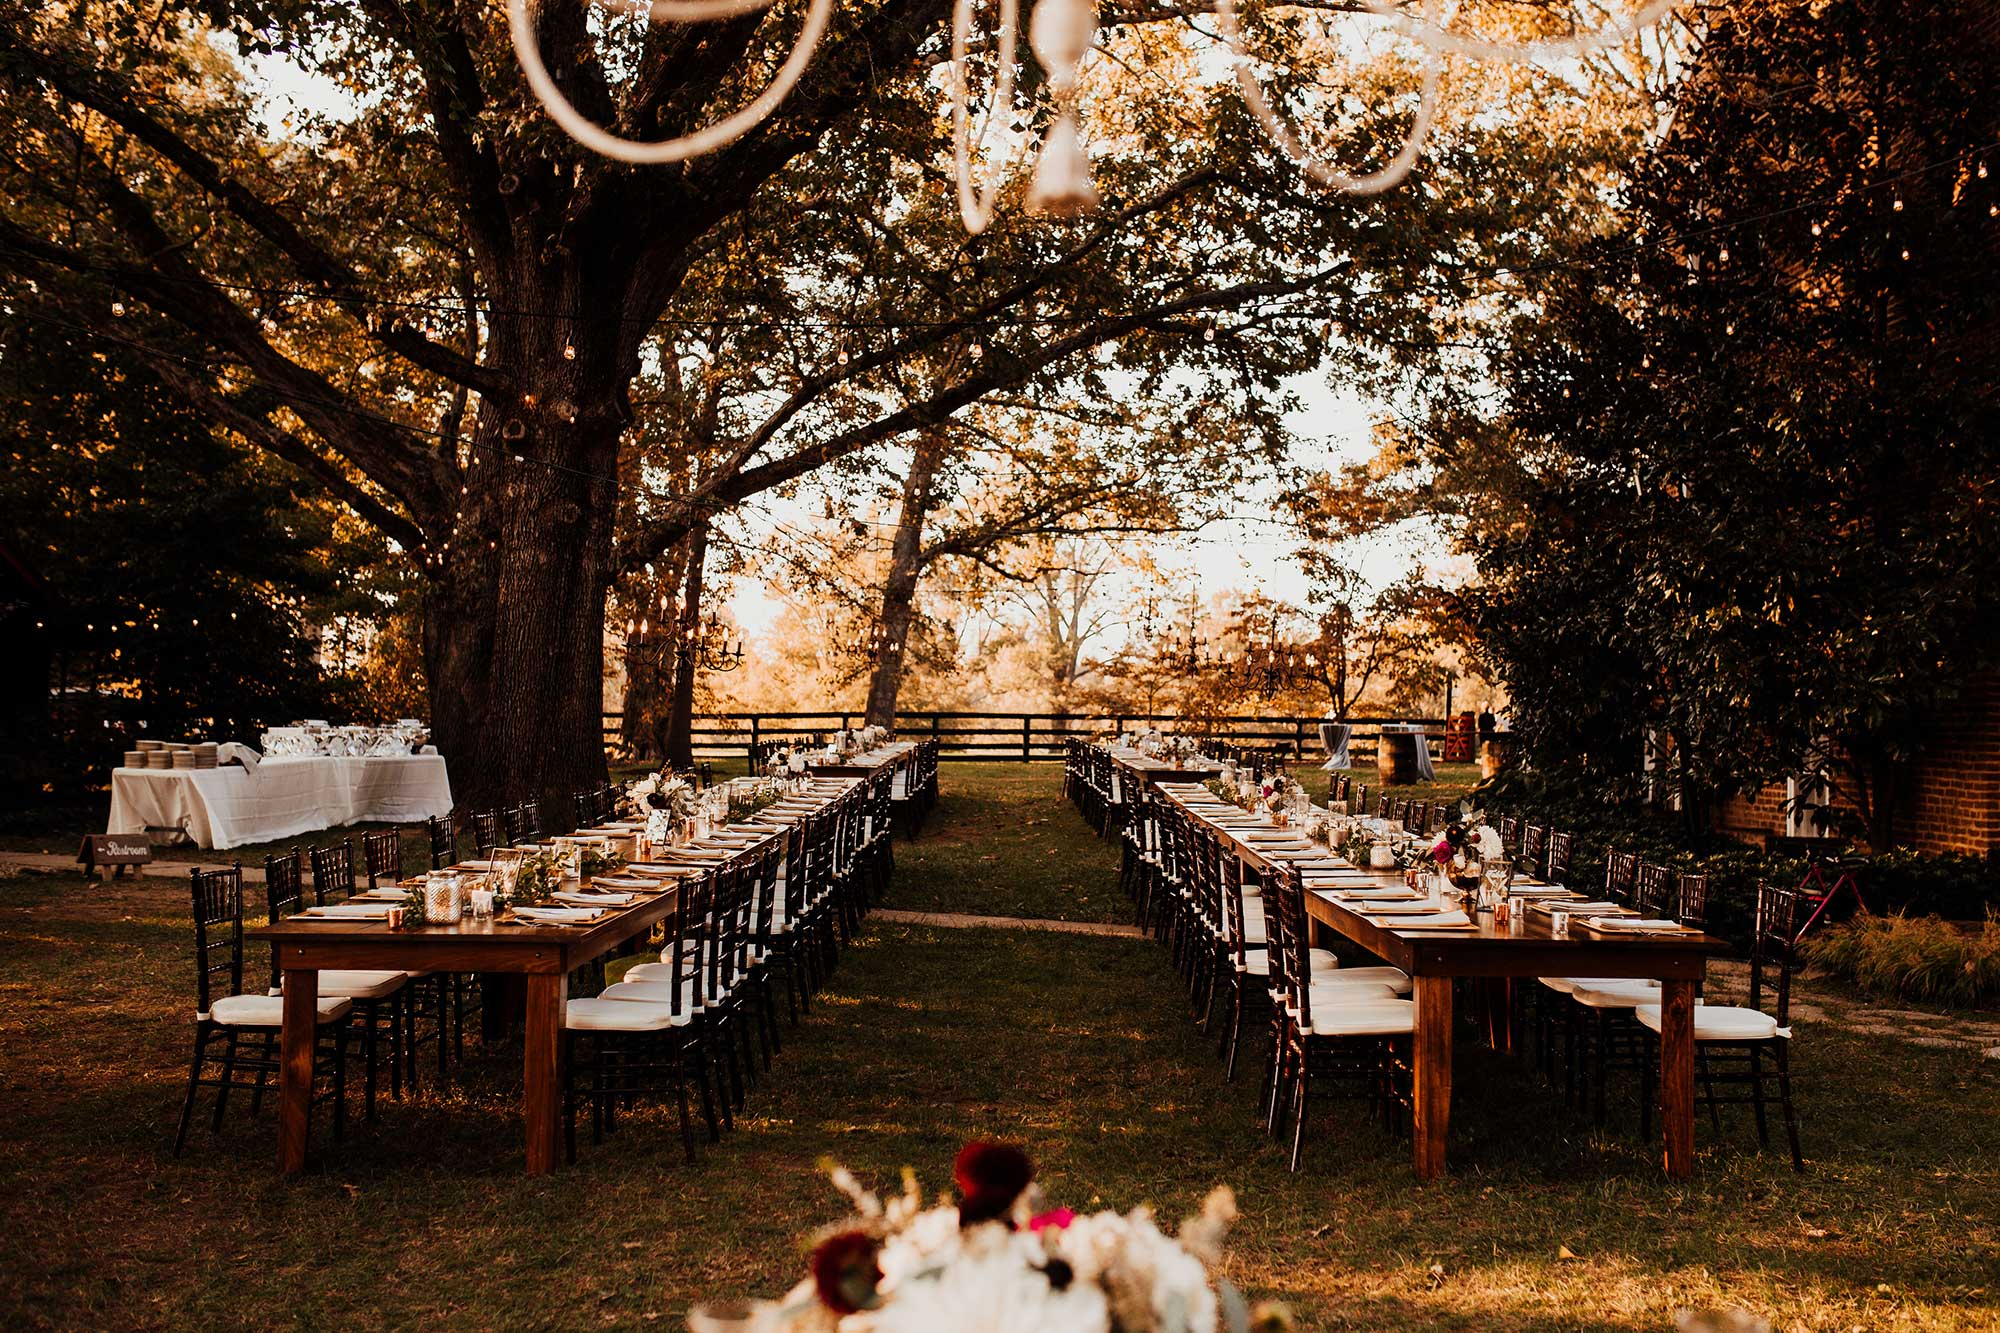 LGBTQ Louisville Kentucky Wedding at Hermitage Farm Crystal Ludwick Photo long reception tables outdoors